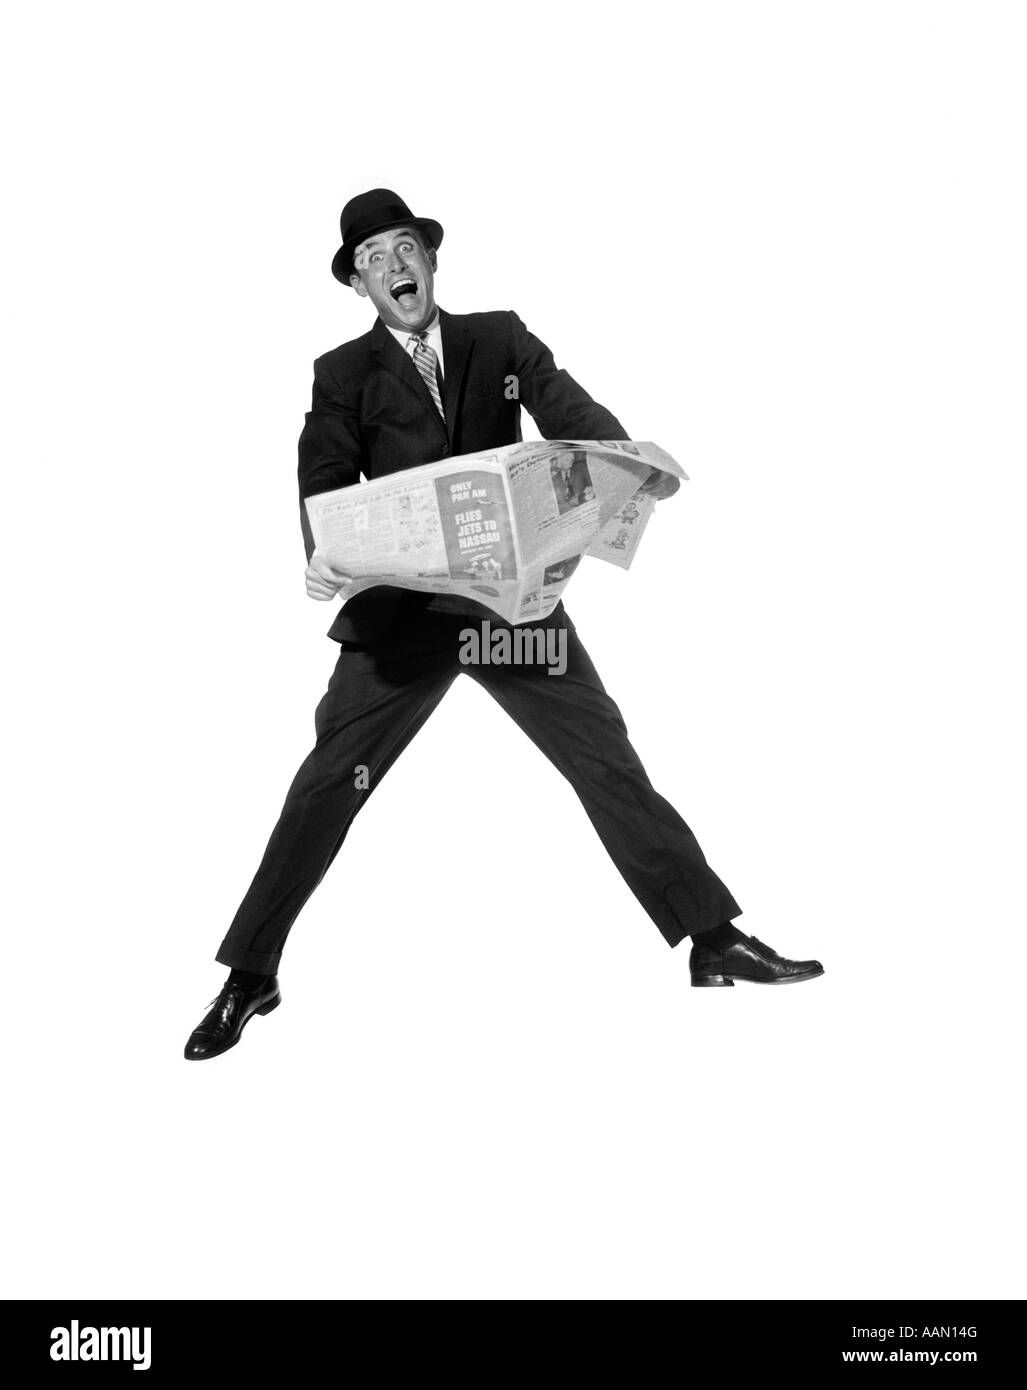 1950s MAN IN BUSINESS SUIT AND HAT HOLDING NEWSPAPER WITH EXAGGERATED EXPRESSION - Stock Image